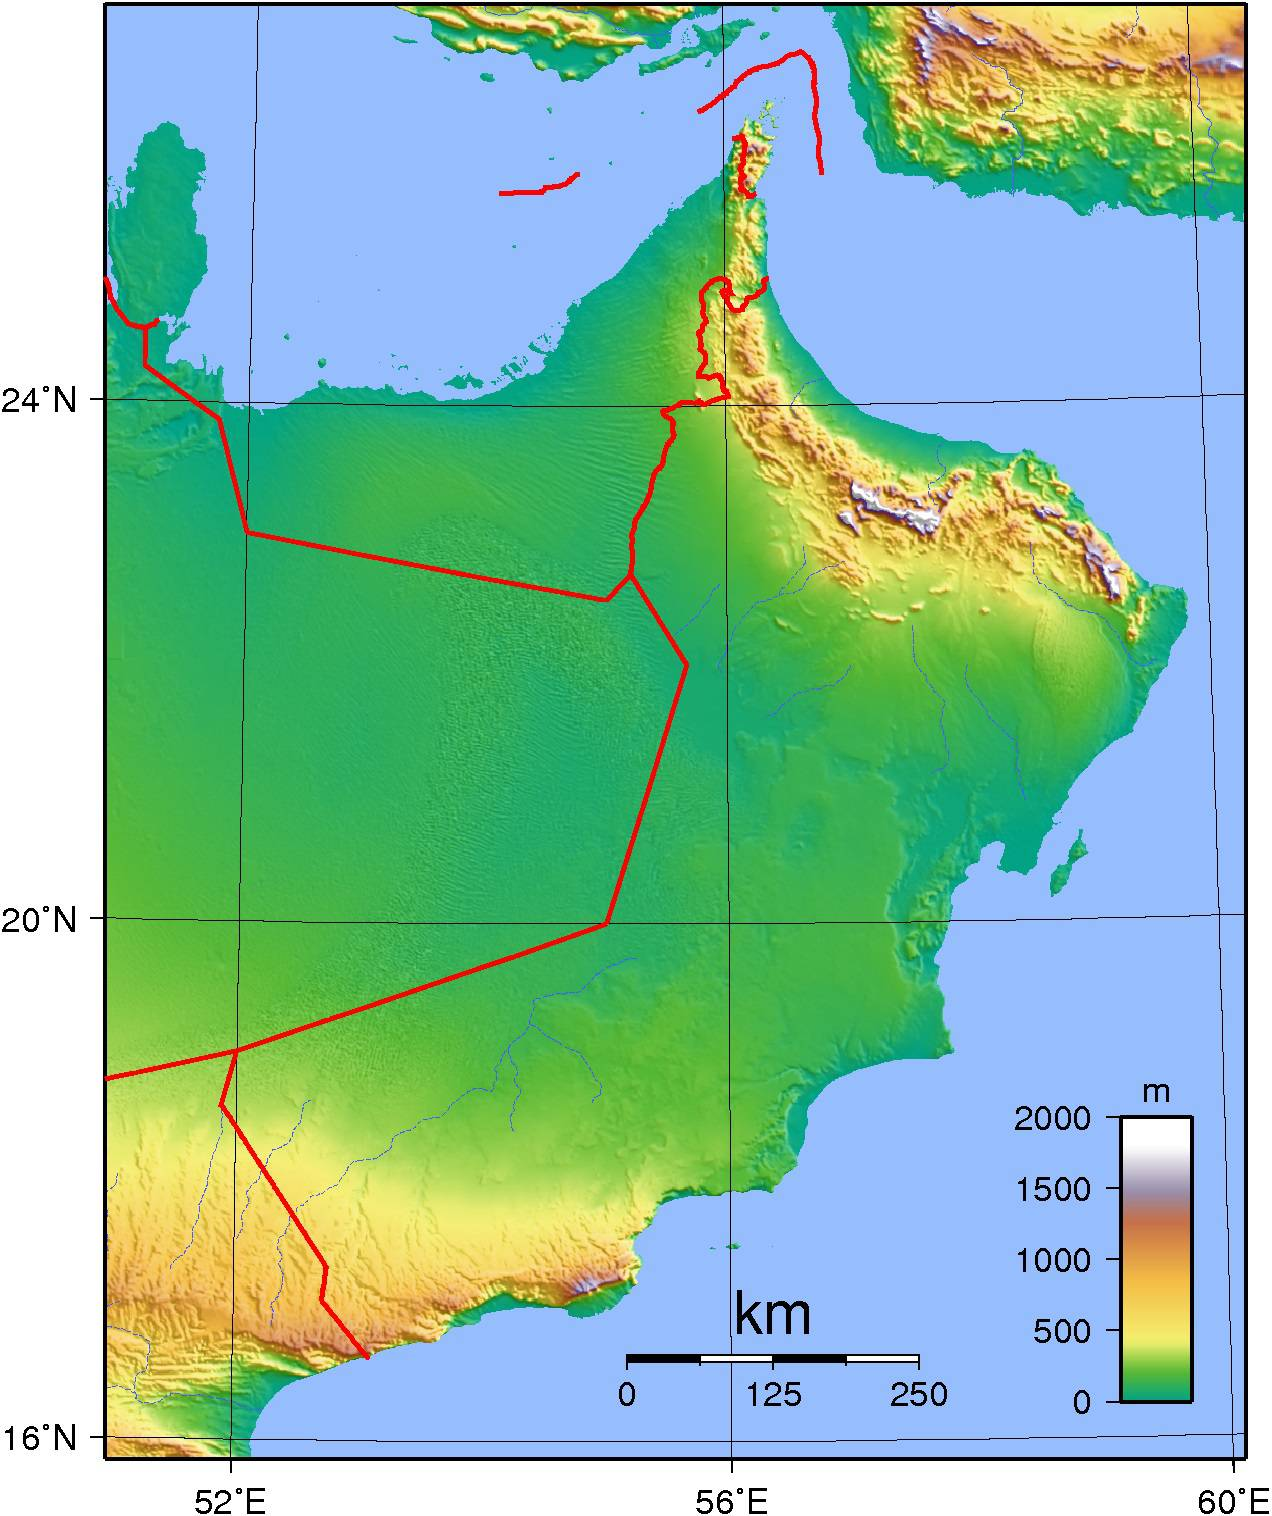 Carte du relief d'Oman